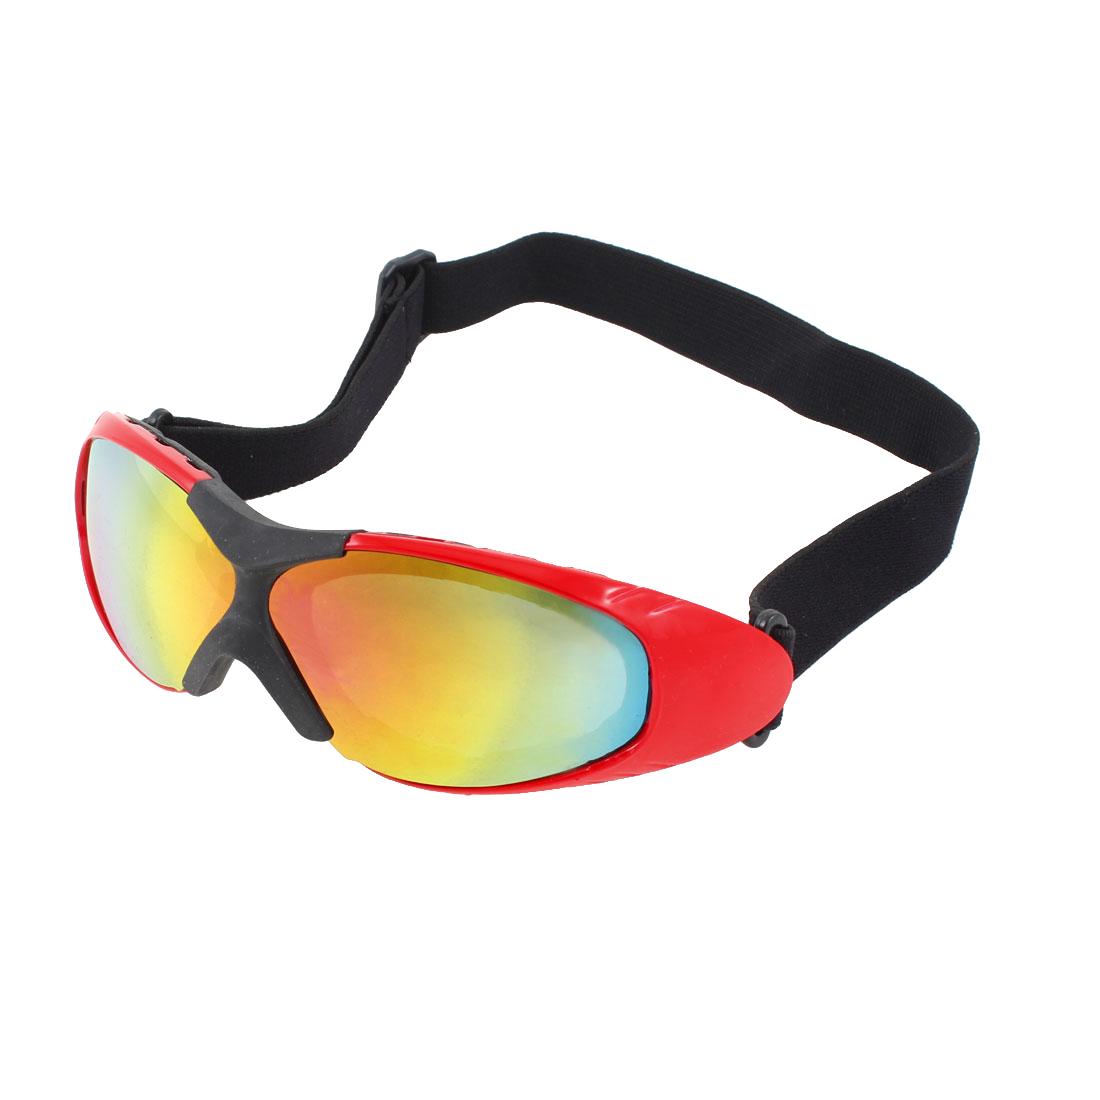 Adult Colorful Lens Motorcycle Safety Skiing Snow Sports Goggles Glasses Red